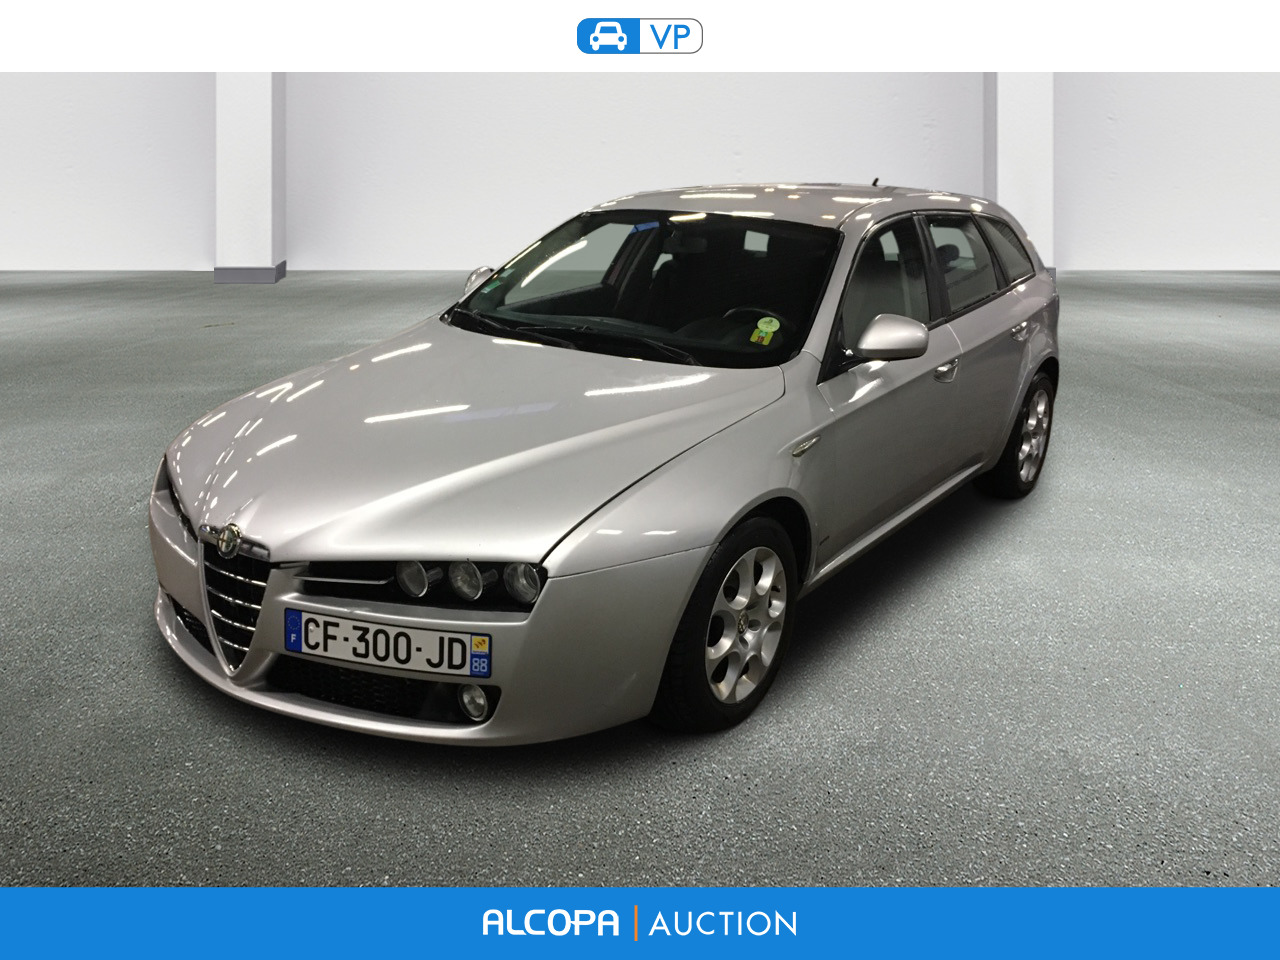 alfa romeo 159 sportwagon 02 2006 05 2013 159 sw 1 9 jtdm 16v distinctive alcopa auction. Black Bedroom Furniture Sets. Home Design Ideas